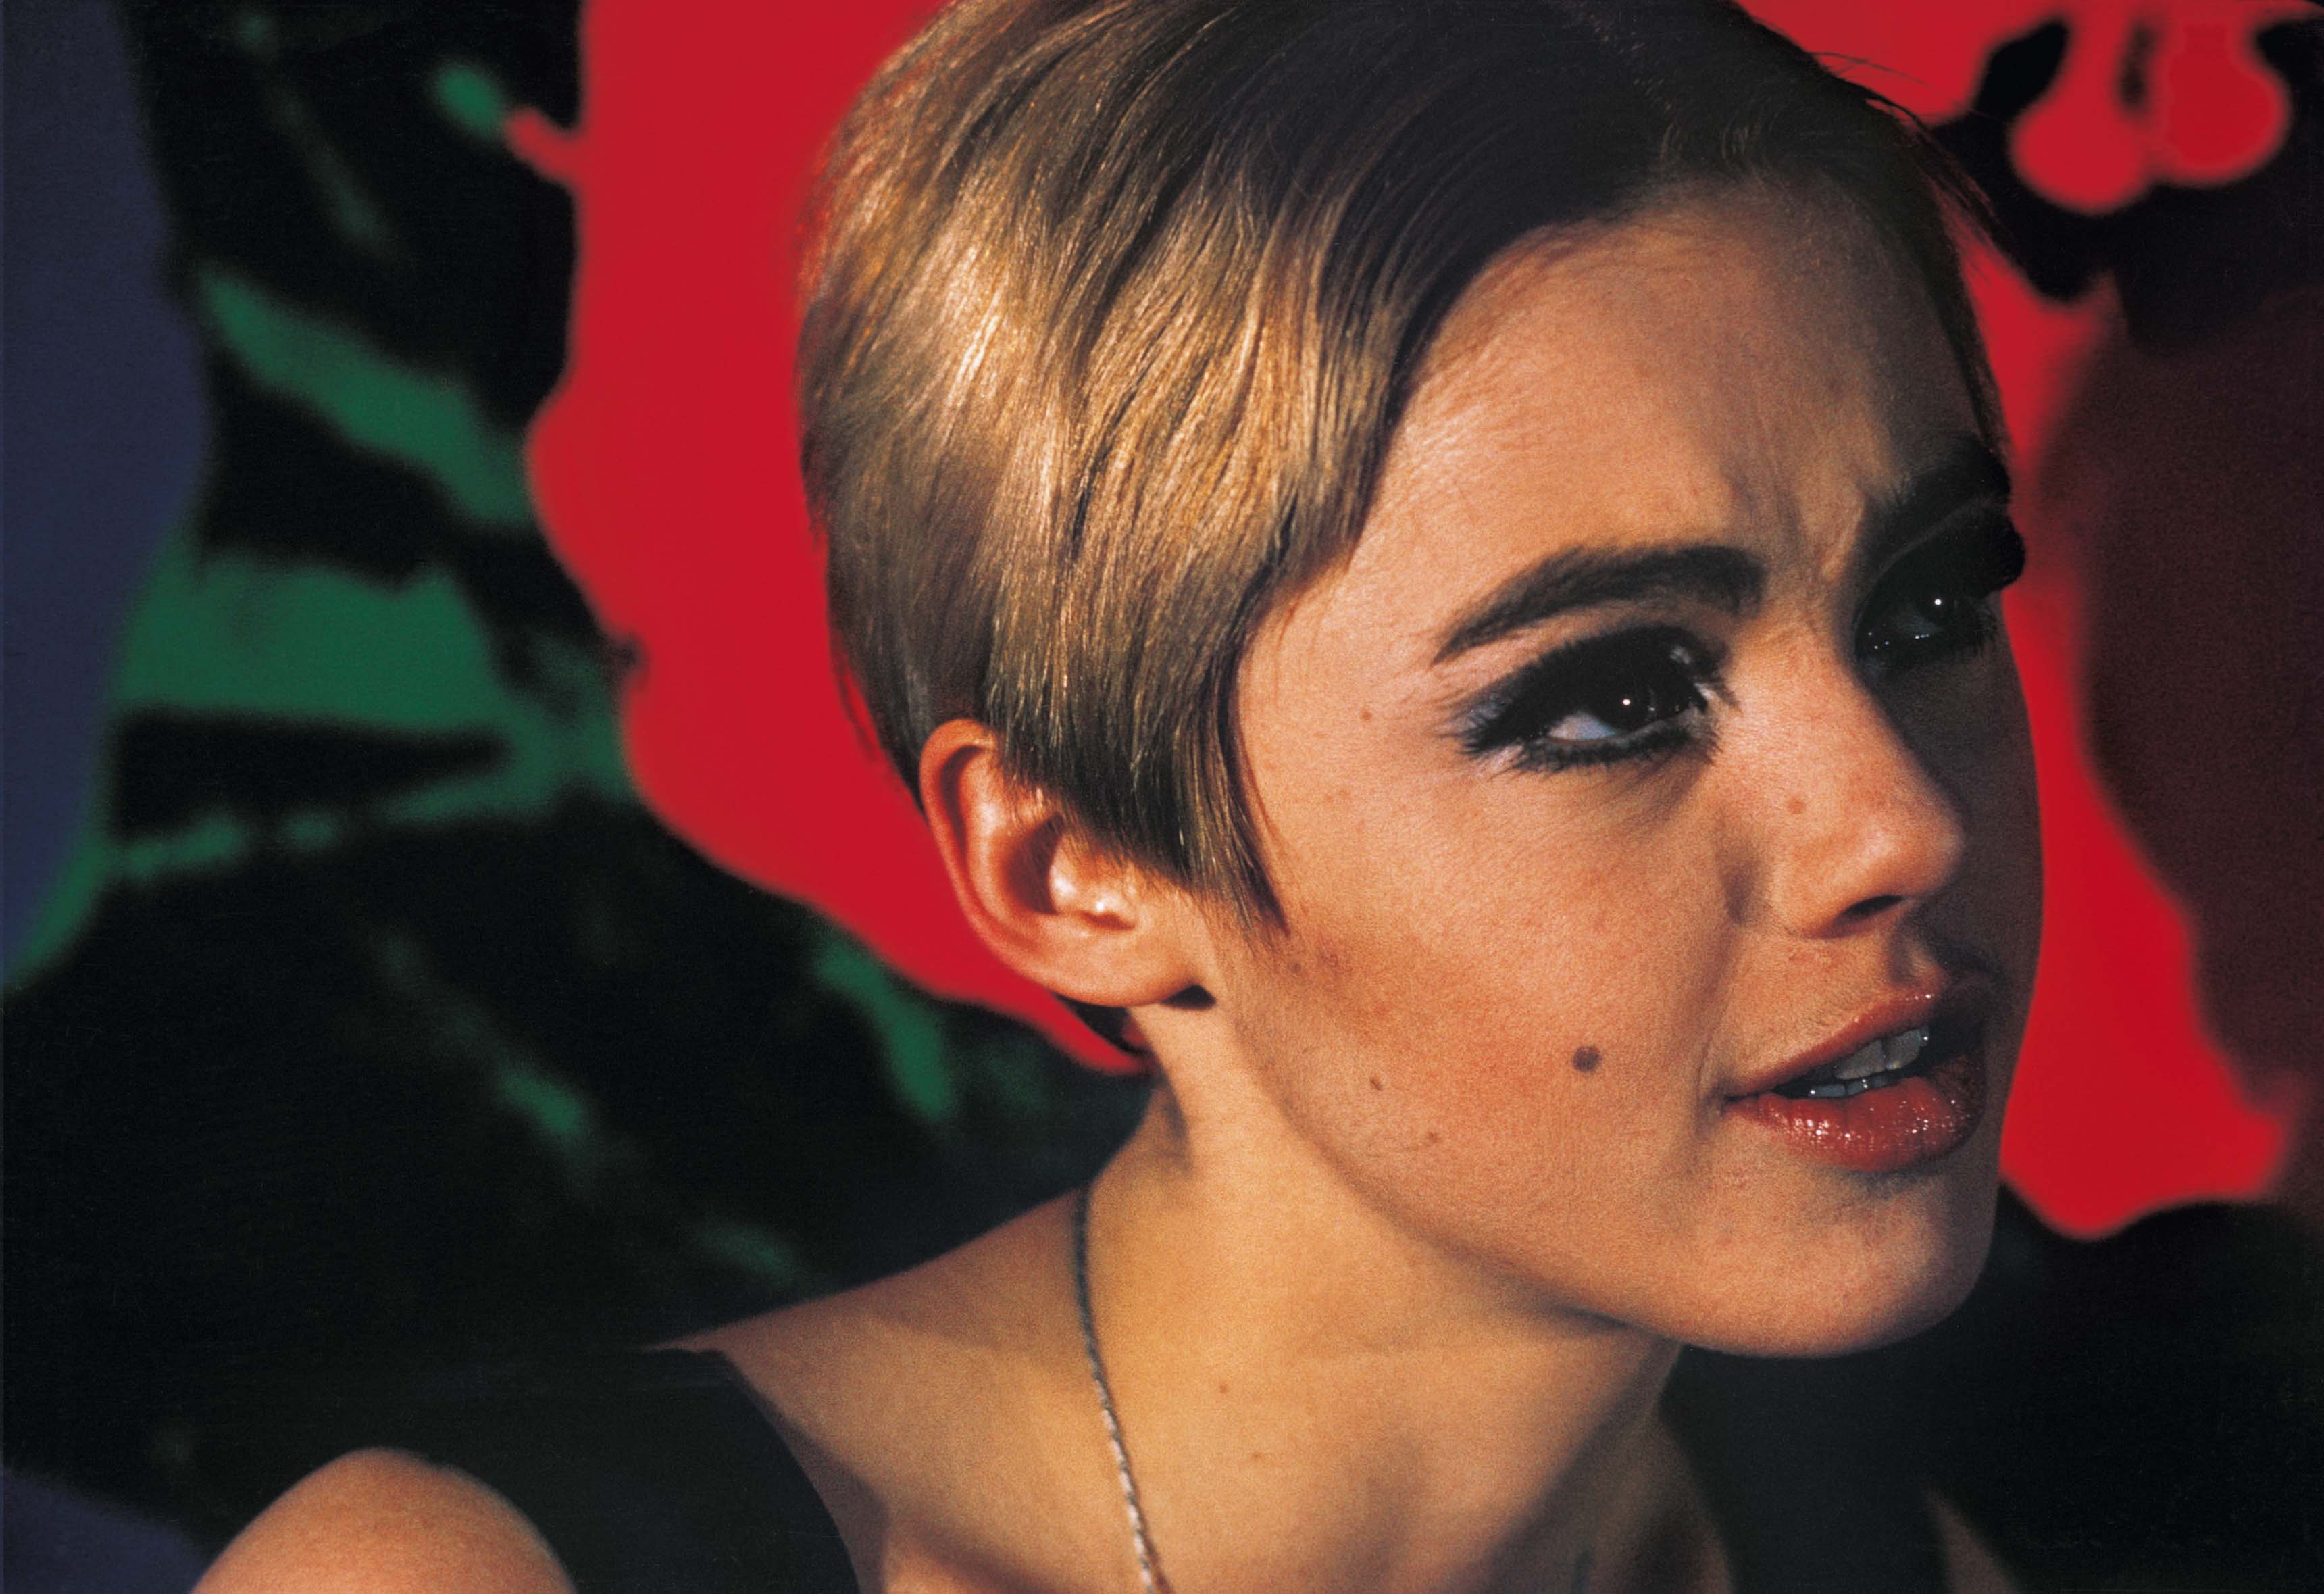 Nat Finkelstein, Edie Sedgwick and red flowers, 1966. Photographie couleur.